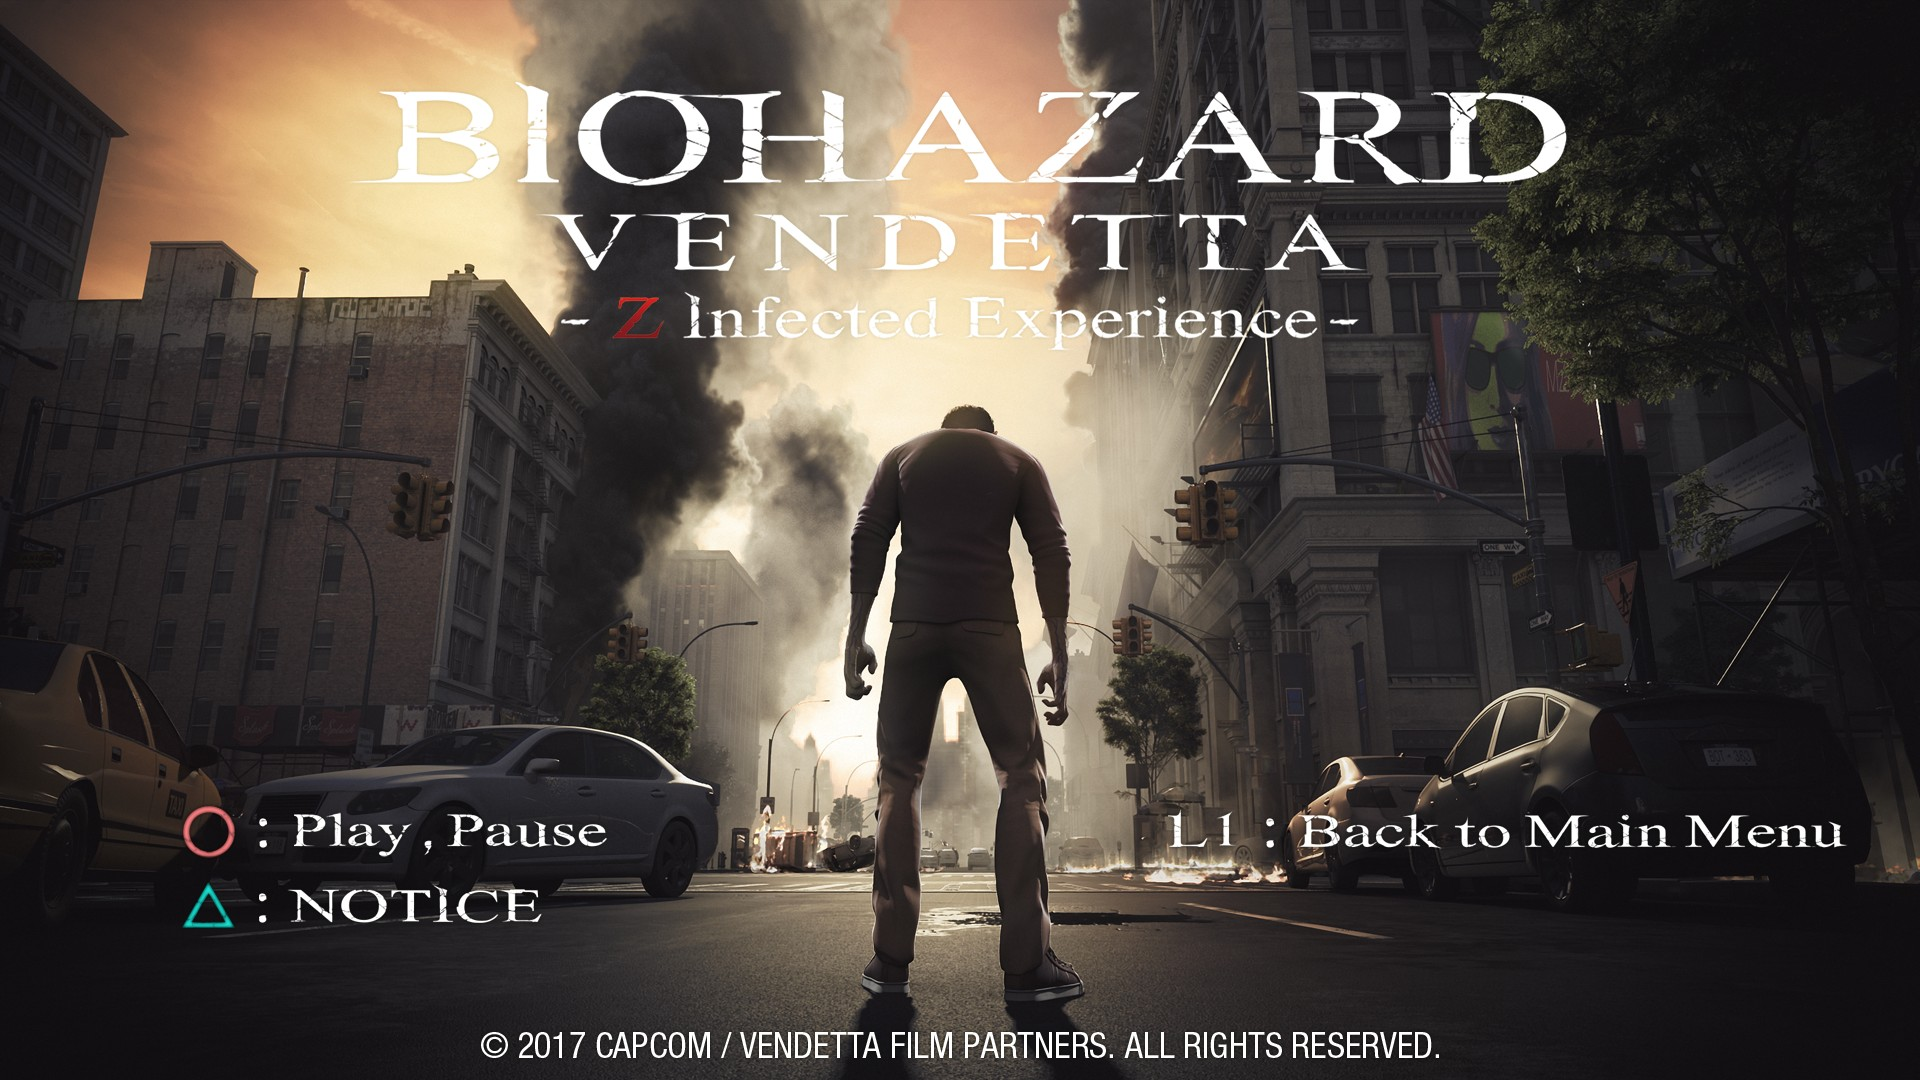 BIOHAZARD VENDETTA : Z Infected Experience_body_3